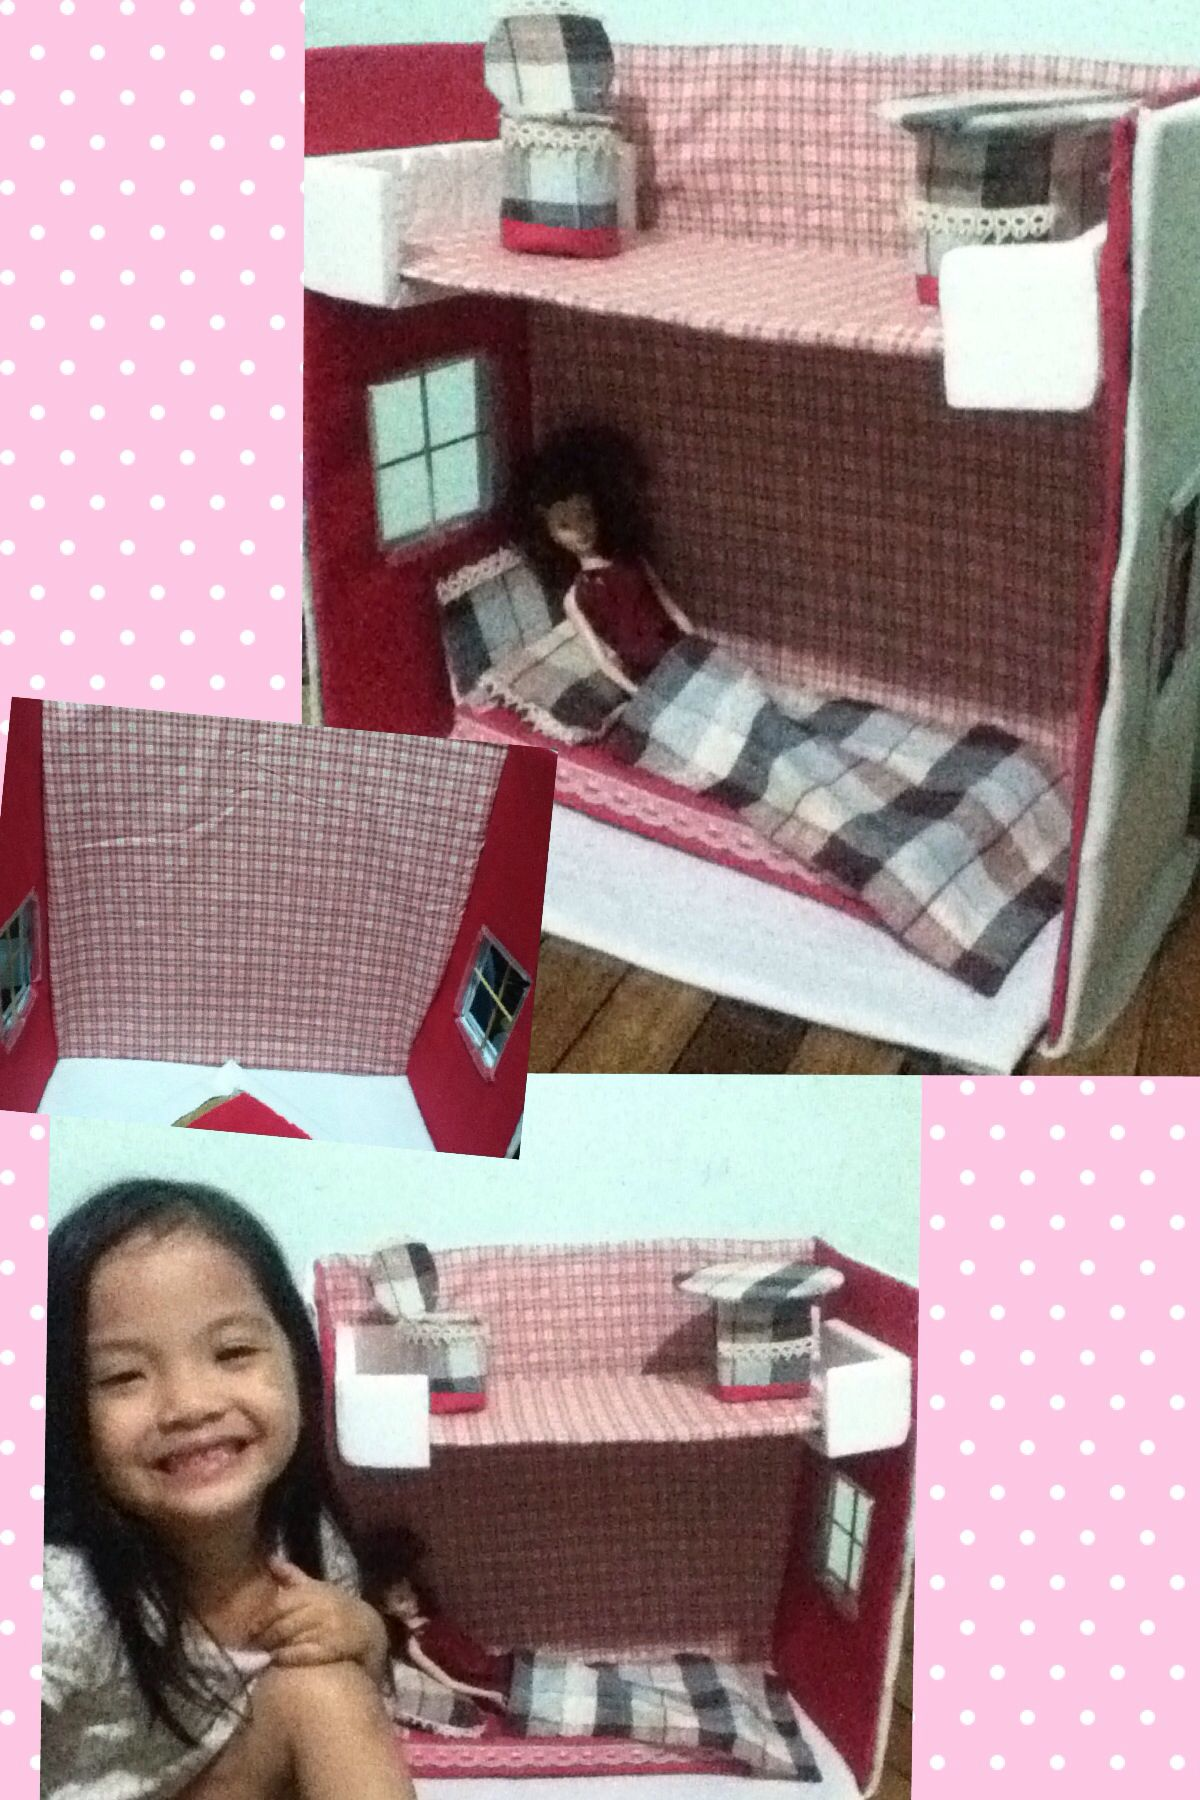 Doll house (not yet finished) my li'l girl is excited to put all her stuff I made out of carton and covered with cloth, BBQ sticks, & plastic spoon . It's just that I ran out of materials. And she's using it now no design, no roof, no details, no finishing touch..